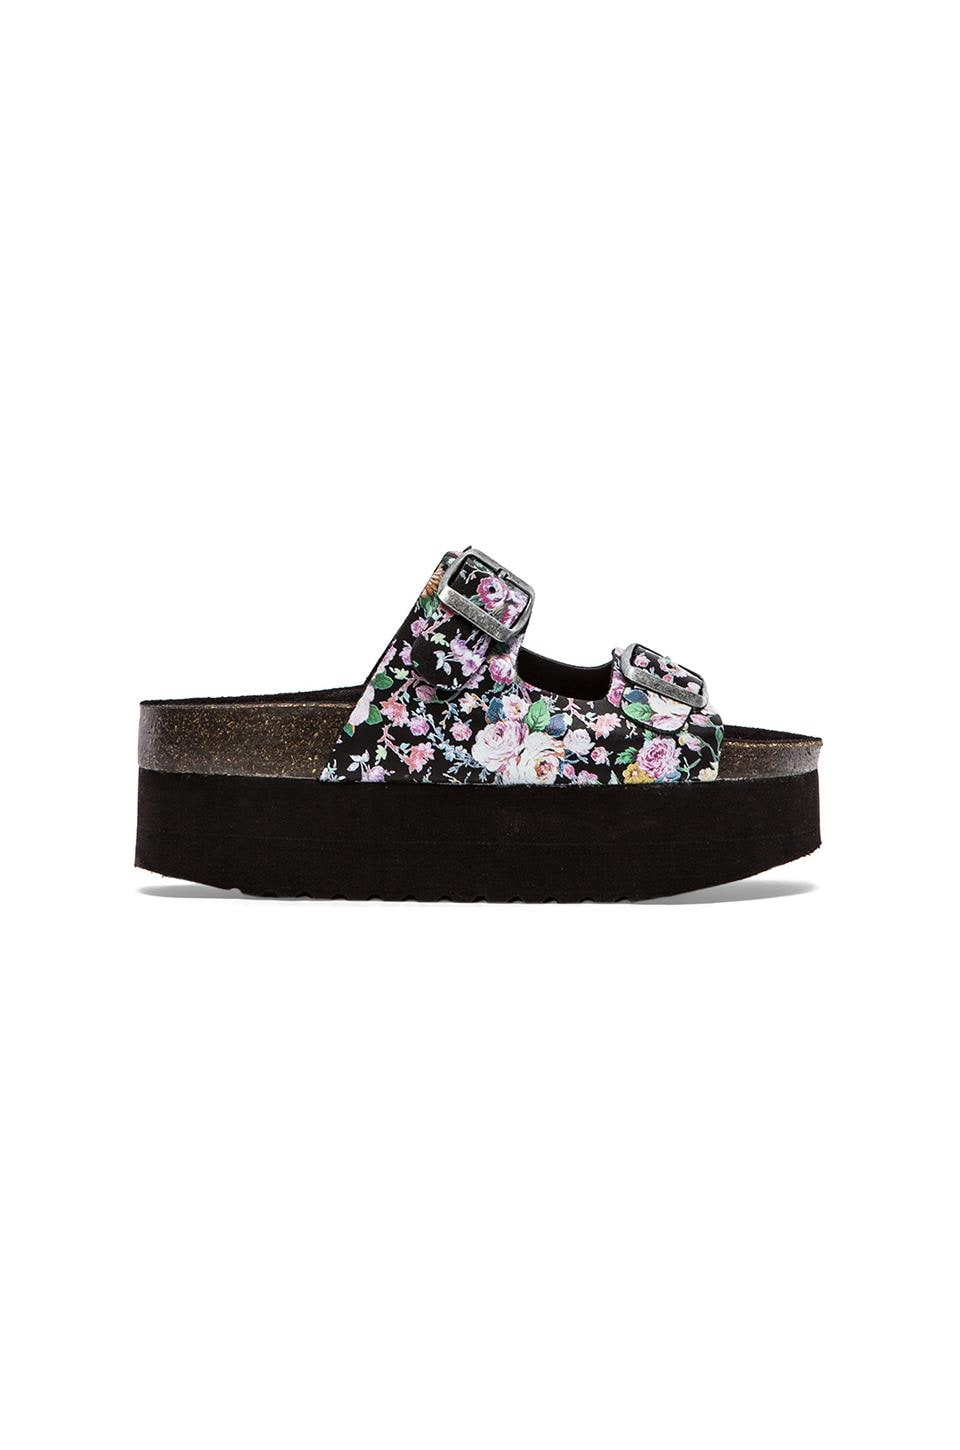 Jeffrey Campbell Aurelia Sandal in Black Floral